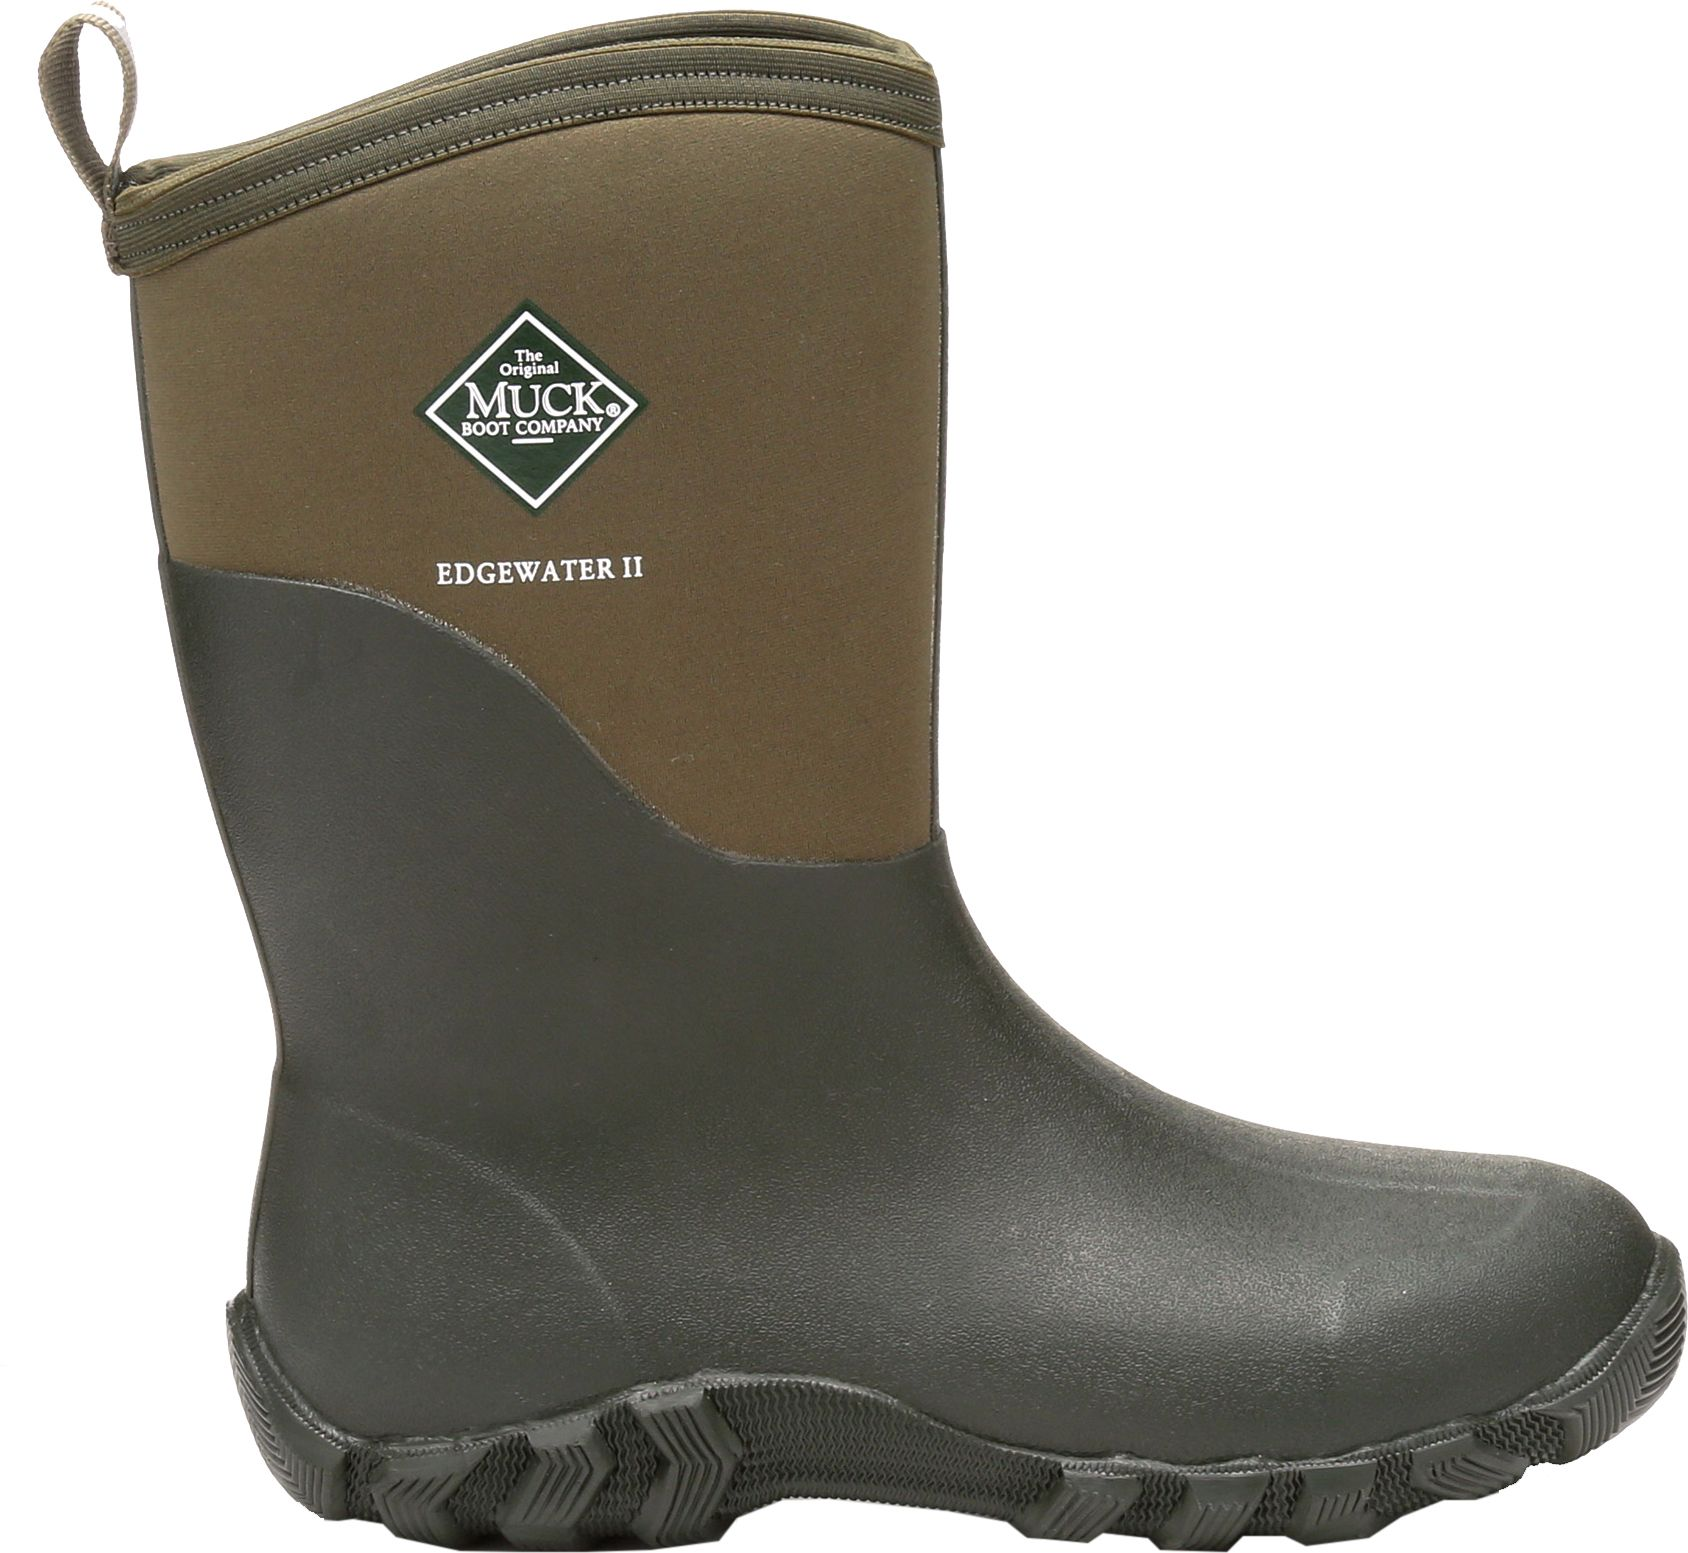 Muck Boot Men's Edgewater II Mid Waterproof Boots| DICK'S Sporting ...